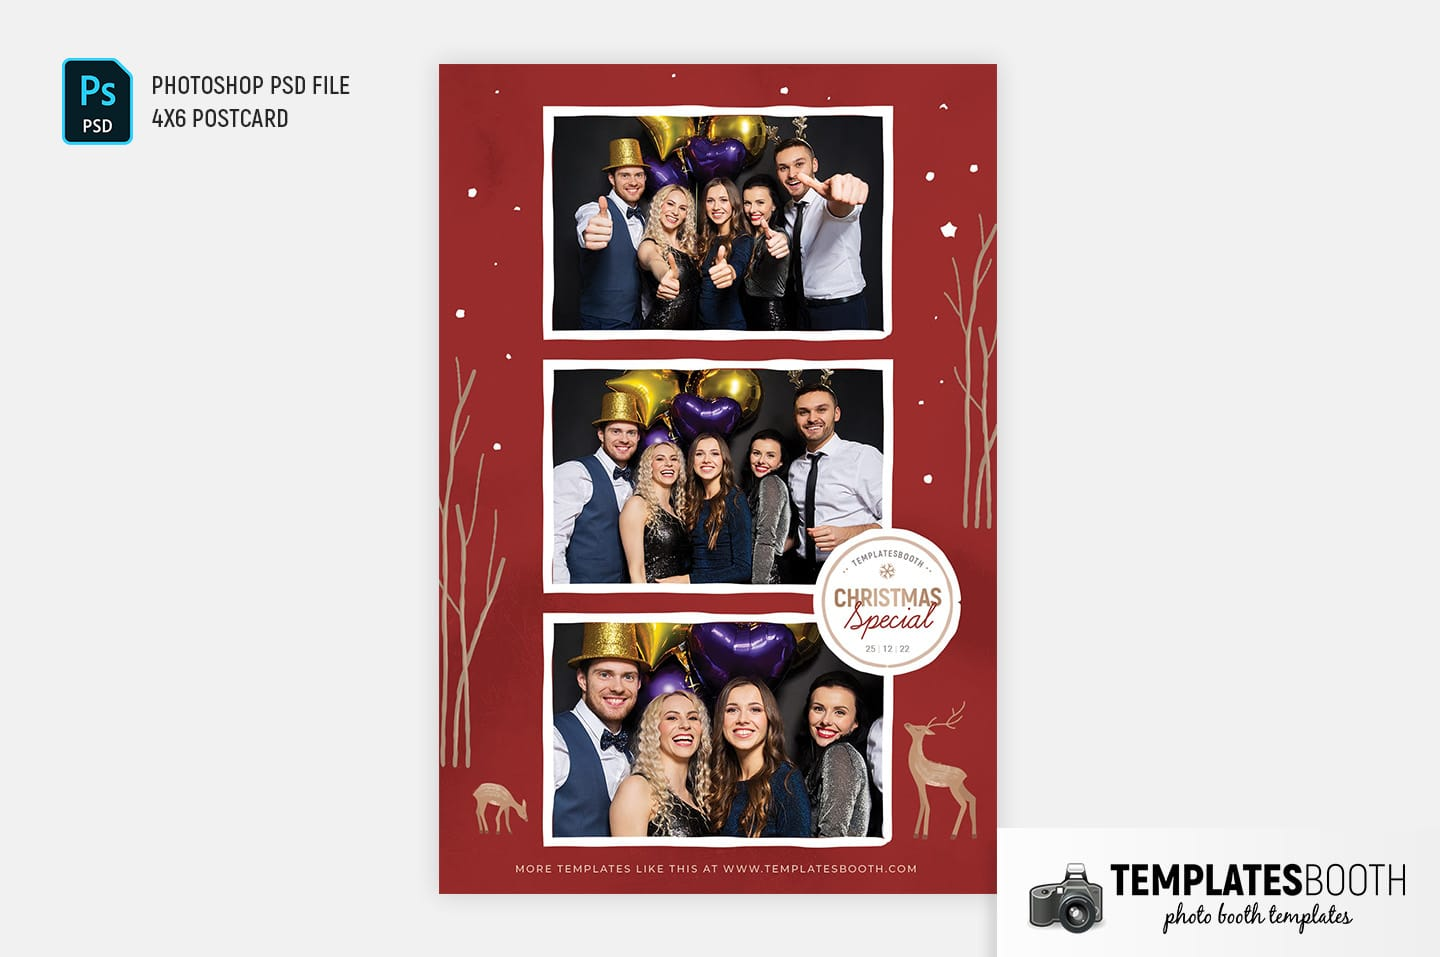 Christmas Special Photo Booth Template (4x6 postcard)